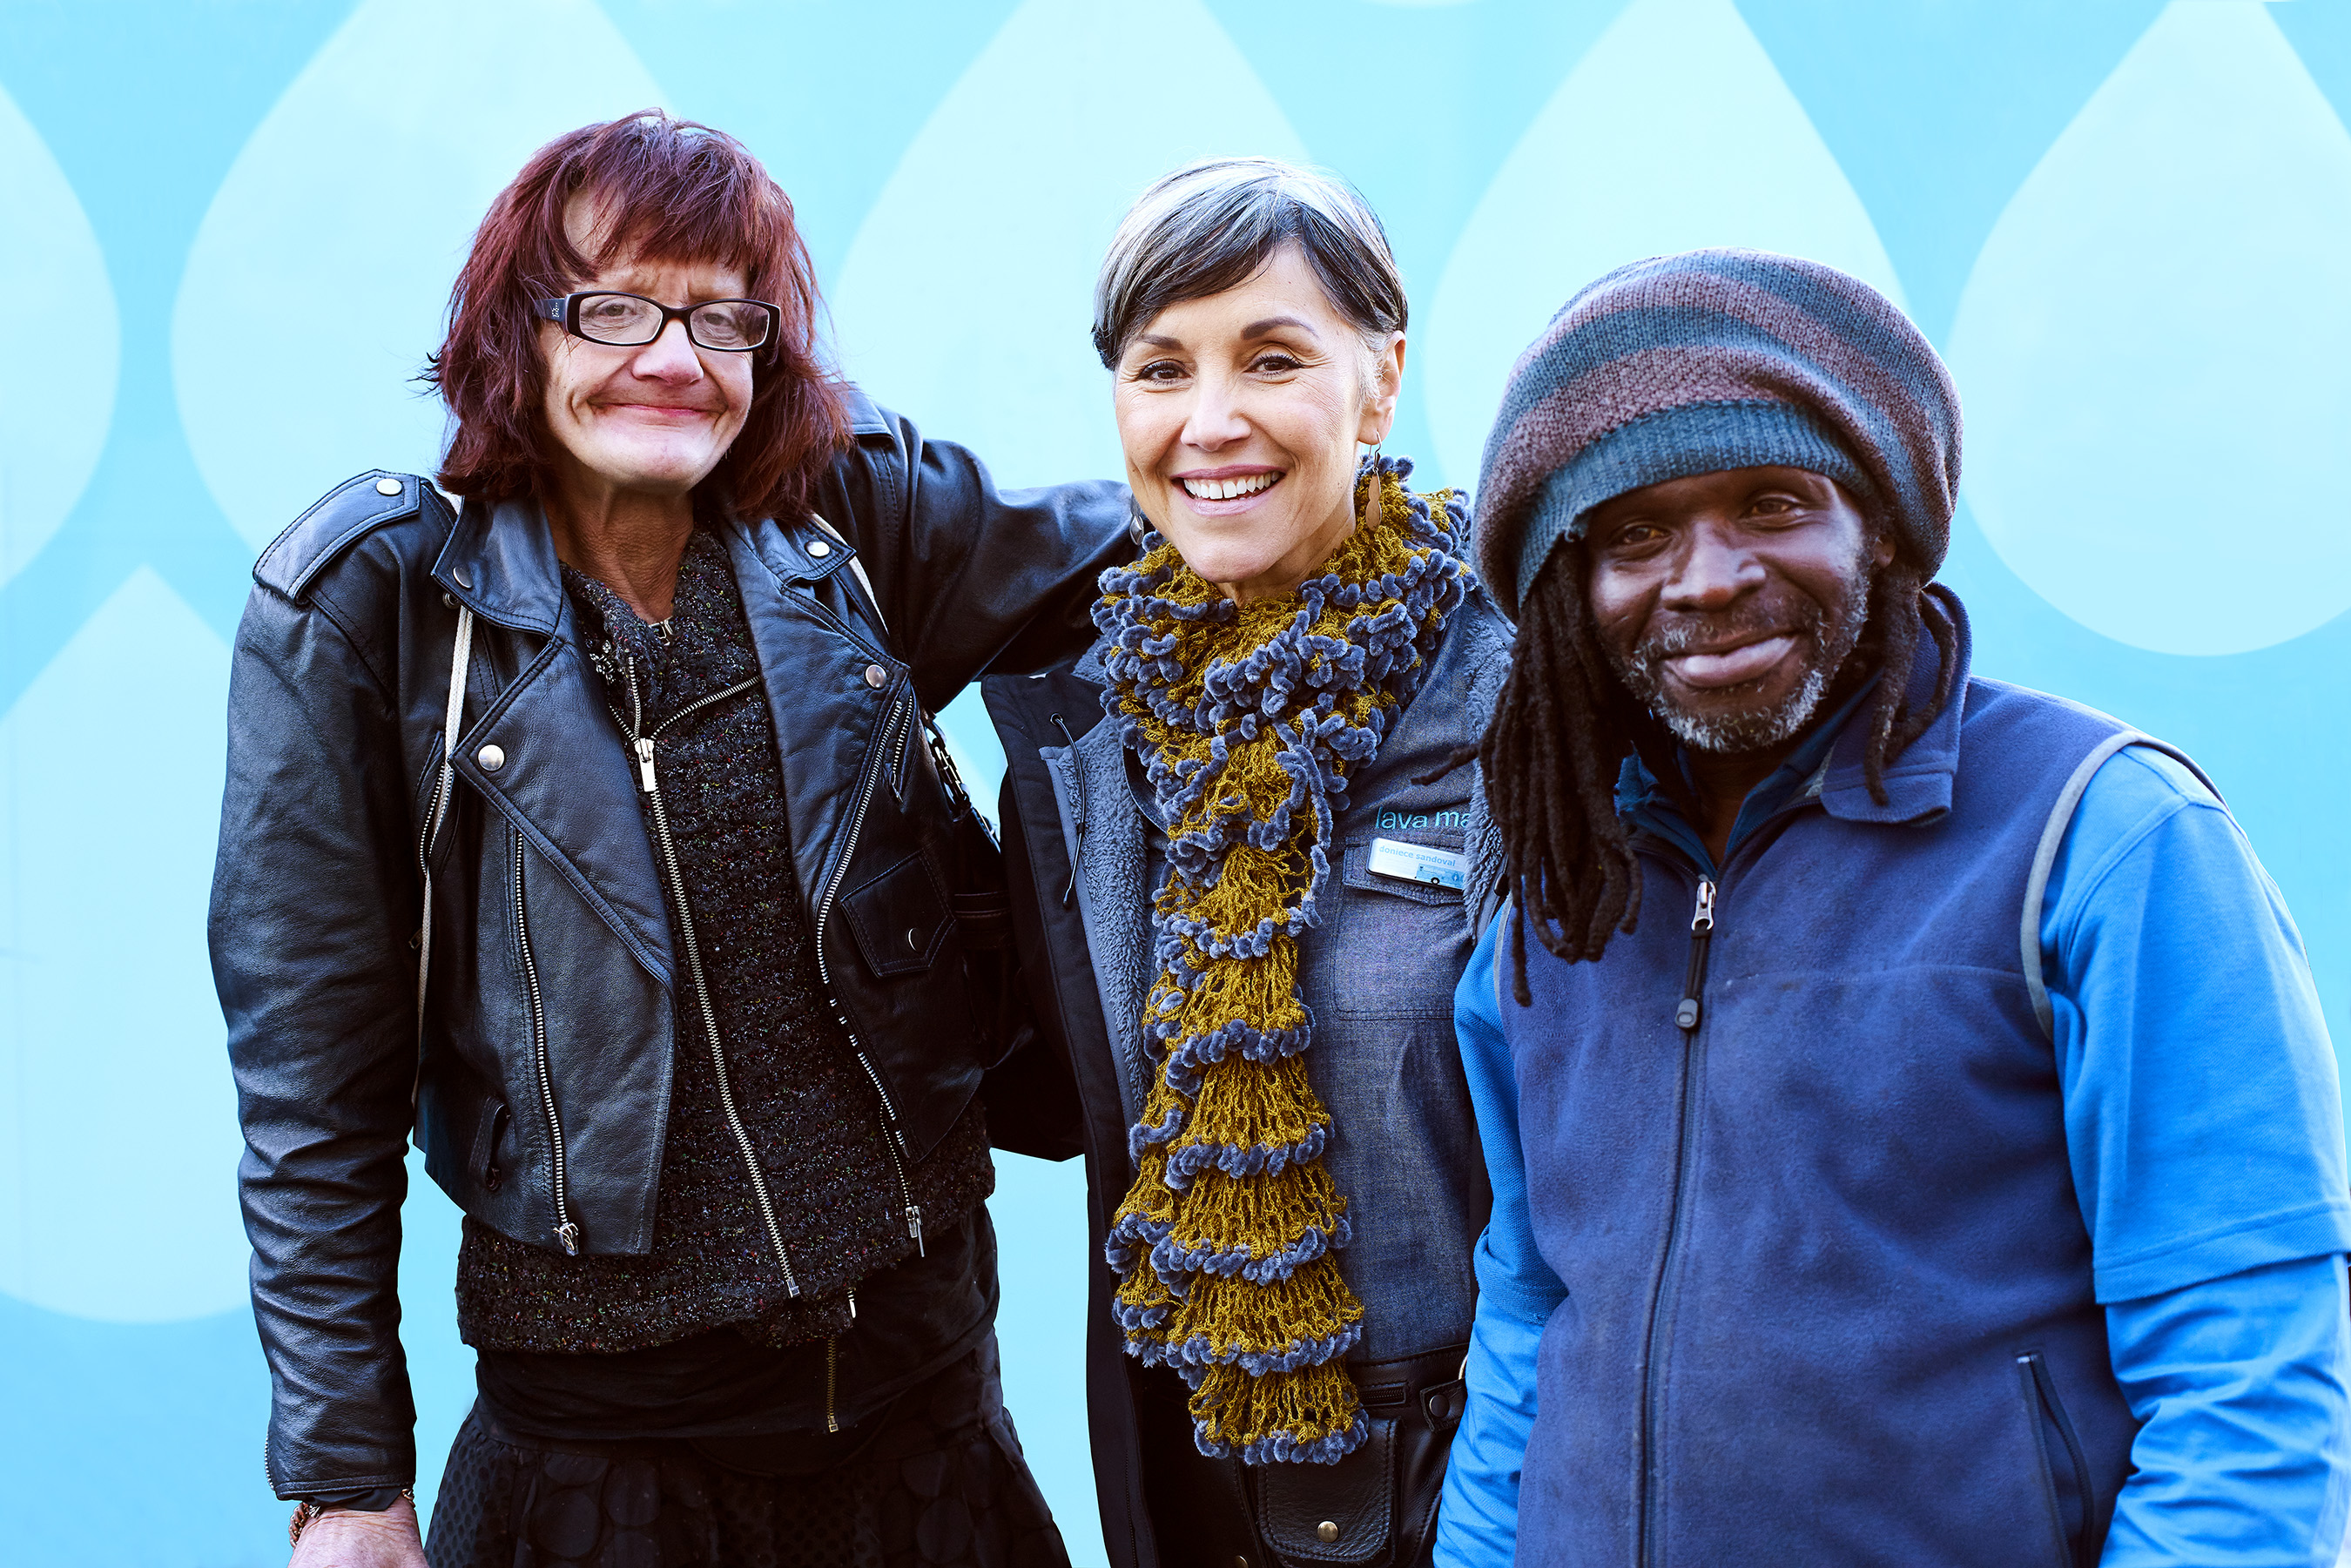 KIND People Grand Prize Winner and Lava Mae founder, Doniece Sandoval, with homeless guests at a pop-up care village in San Francisco